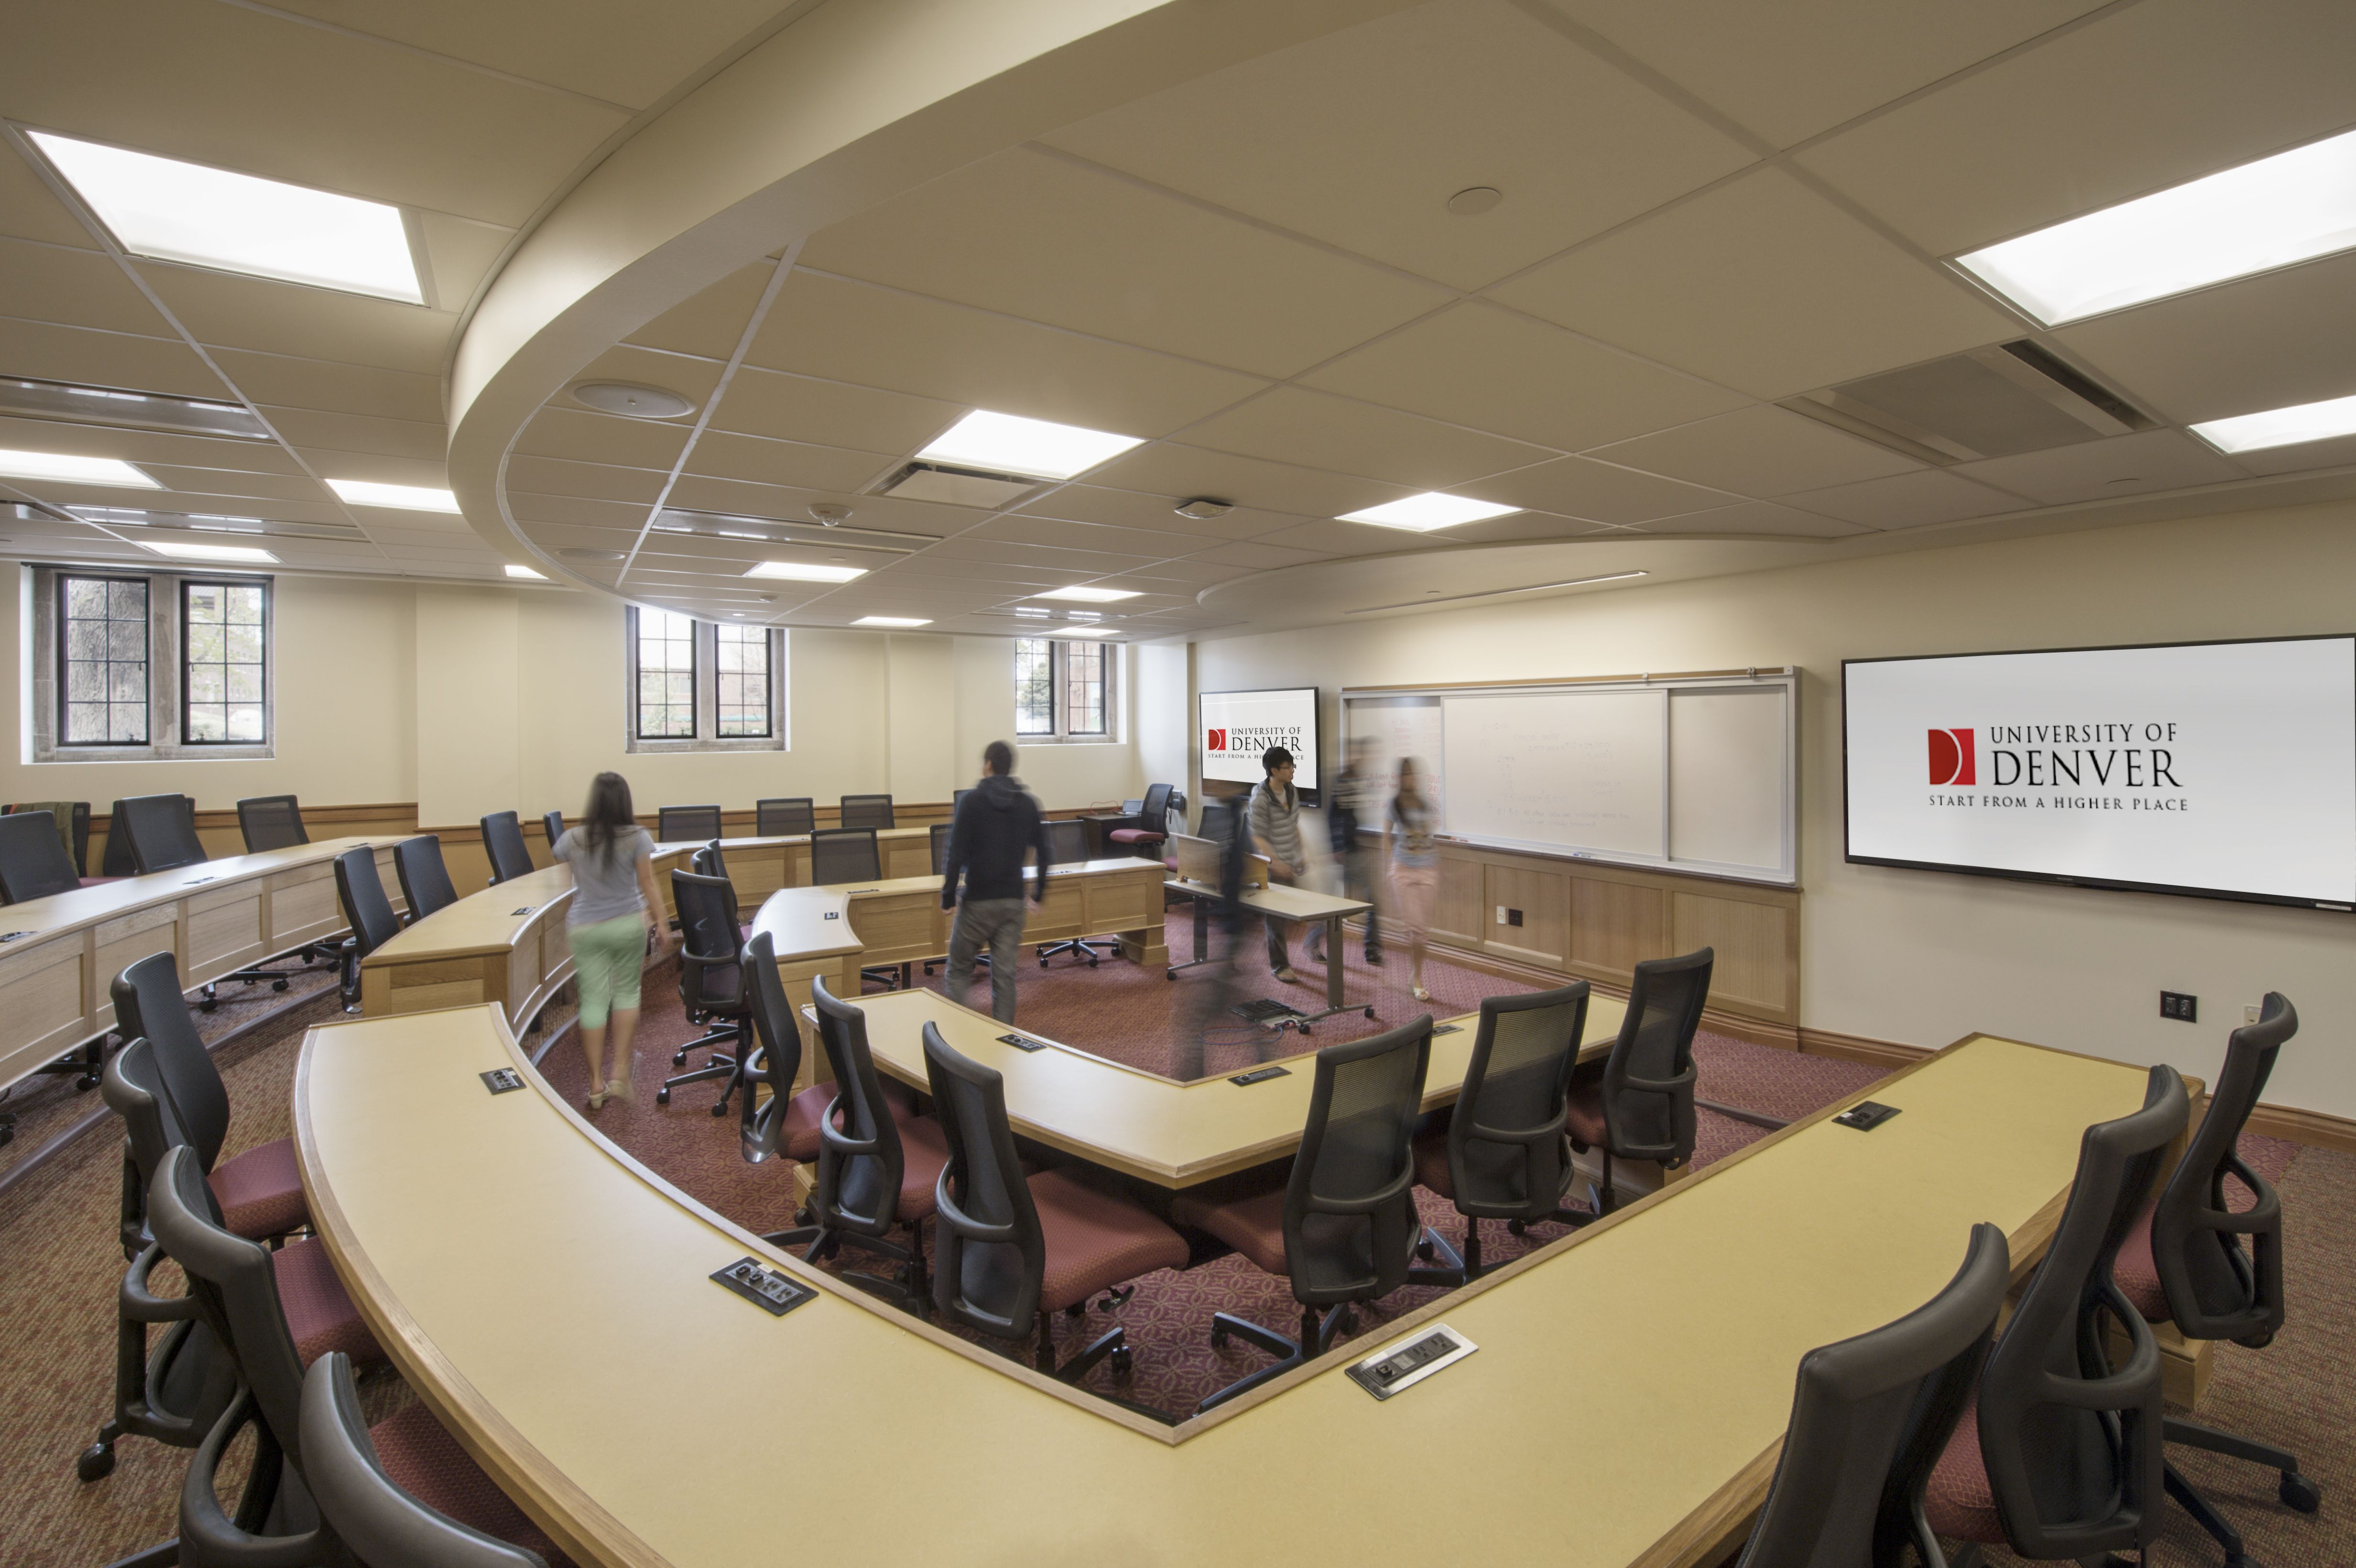 University Of Denver Margery Reed Hall Tiered Classroom Architecture Hord